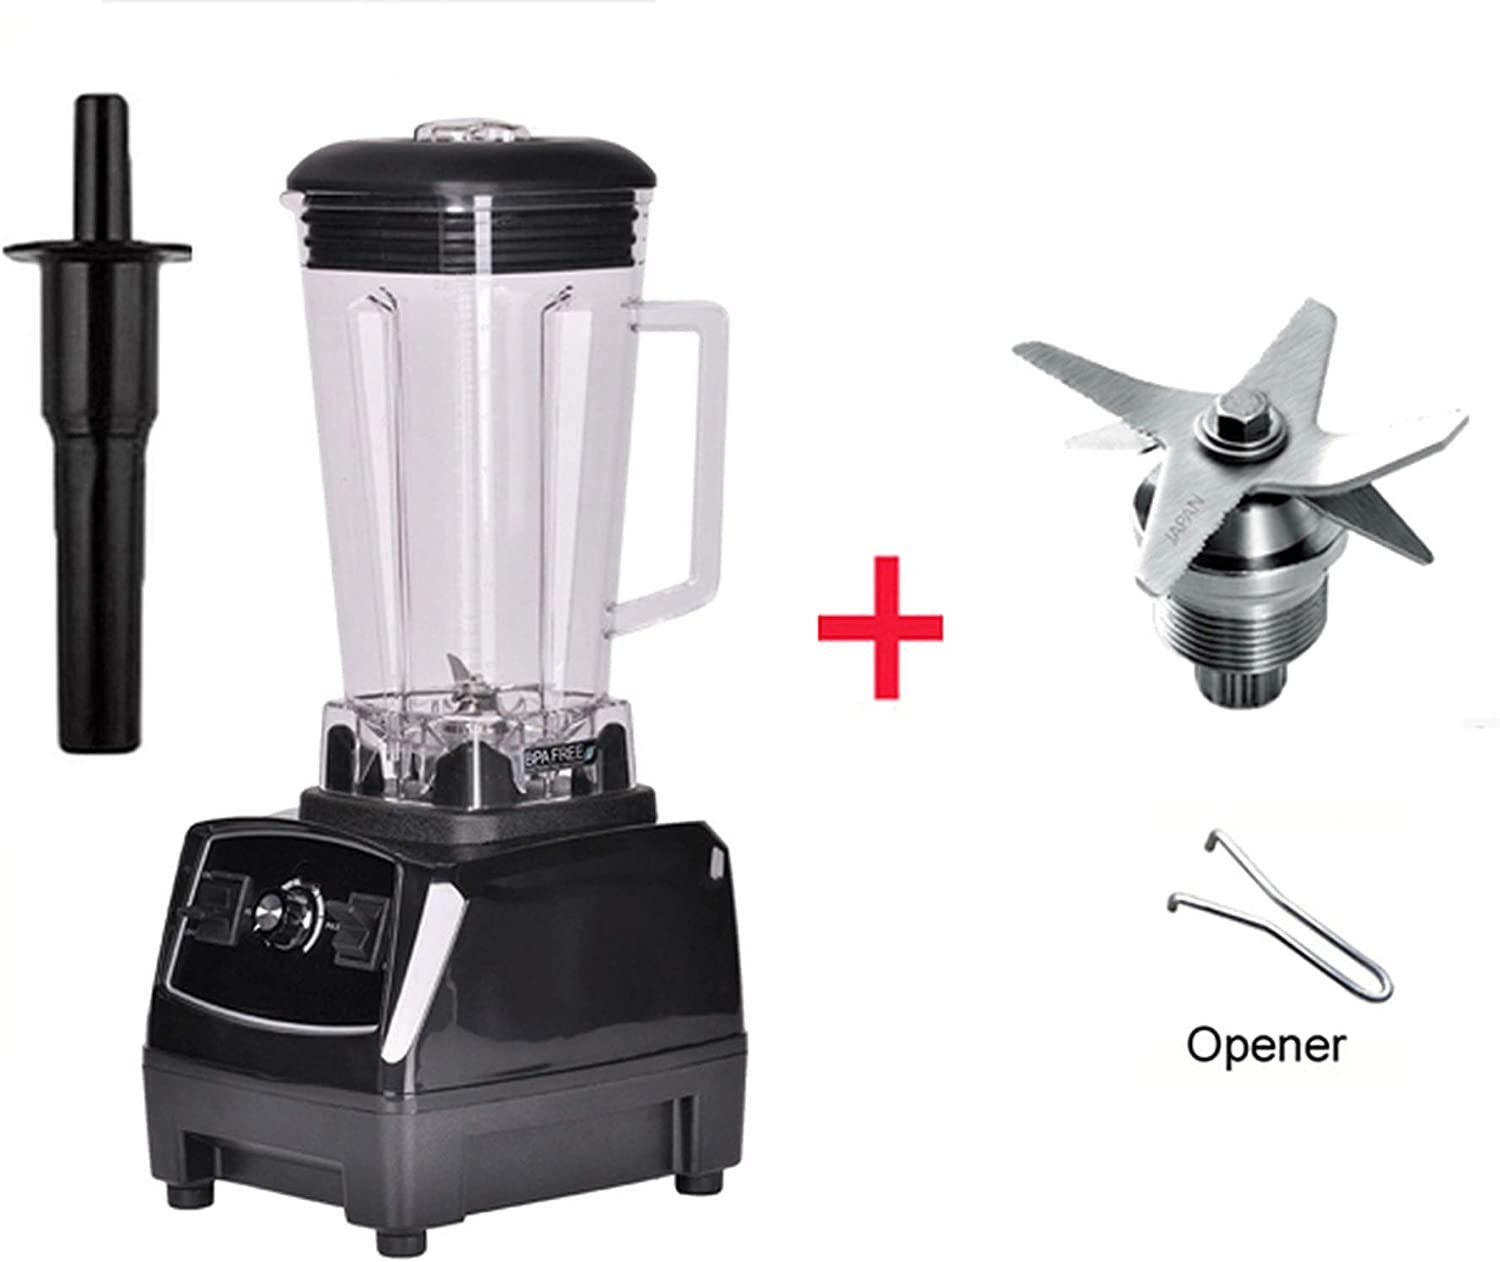 2200W BPA FREE 3HP 2L G5200 high power commercial home professional smoothies power blender food mixer juicer fruit processor,BLACK BLADES TOOL